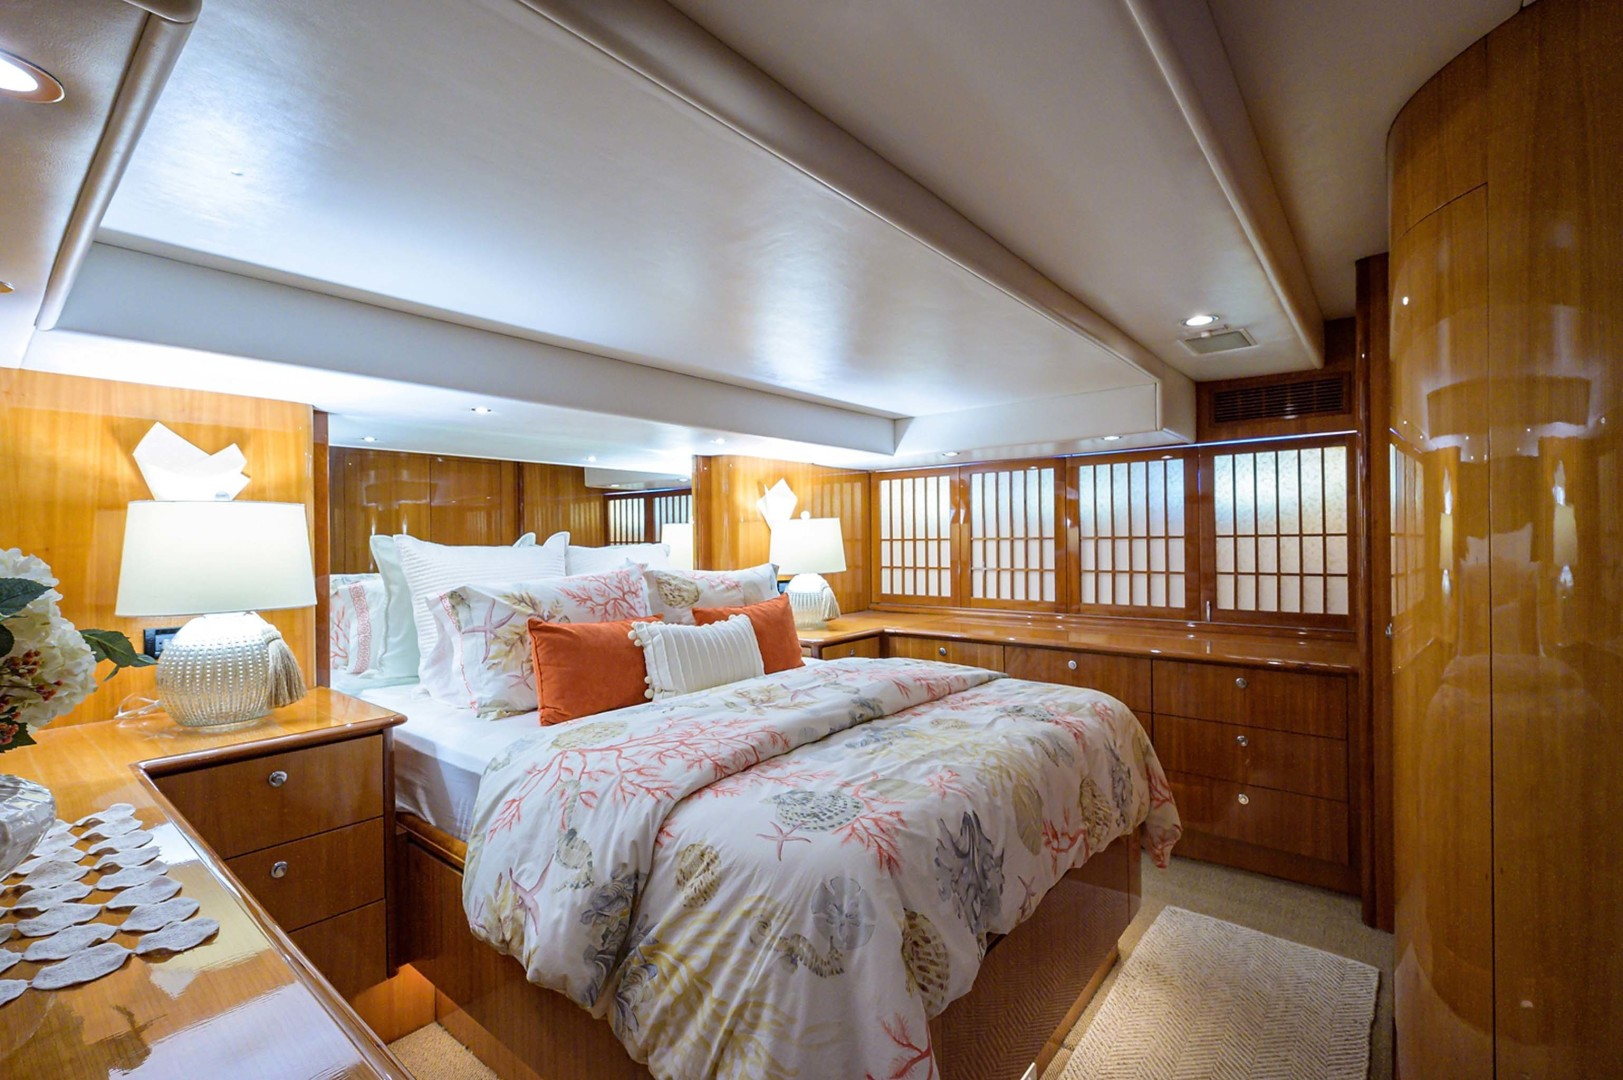 Queenship-Pilothouse Motor Yacht 1996-UNBRIDLED Stuart-Florida-United States-Headboard with Mirror-1383294 | Thumbnail